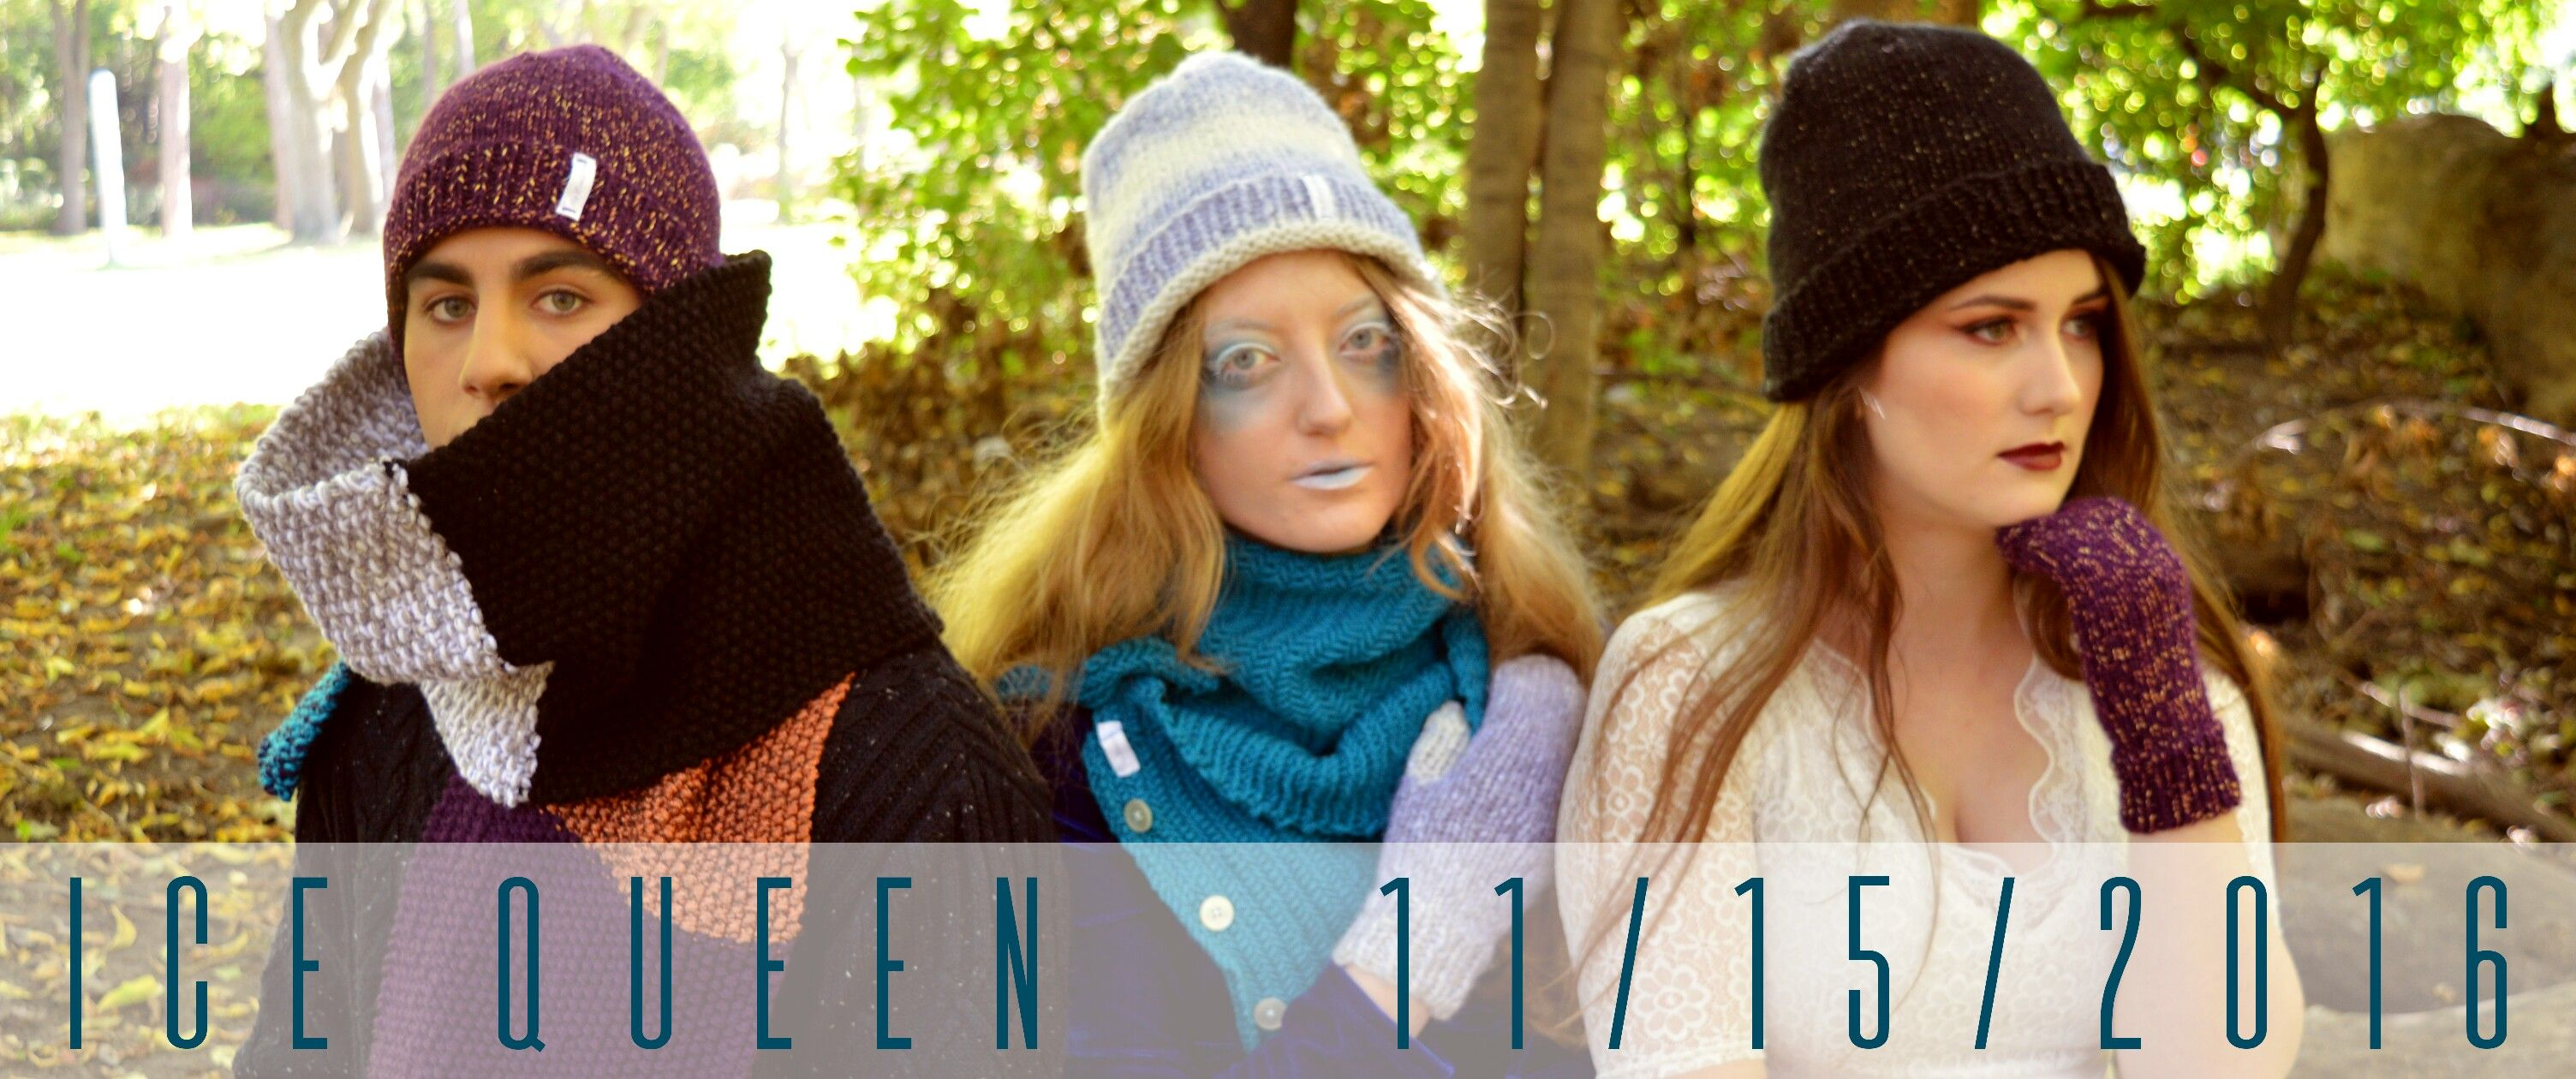 First look at the new knitwear collection, Ice Queen, for ByLivelyLoops on Etsy.